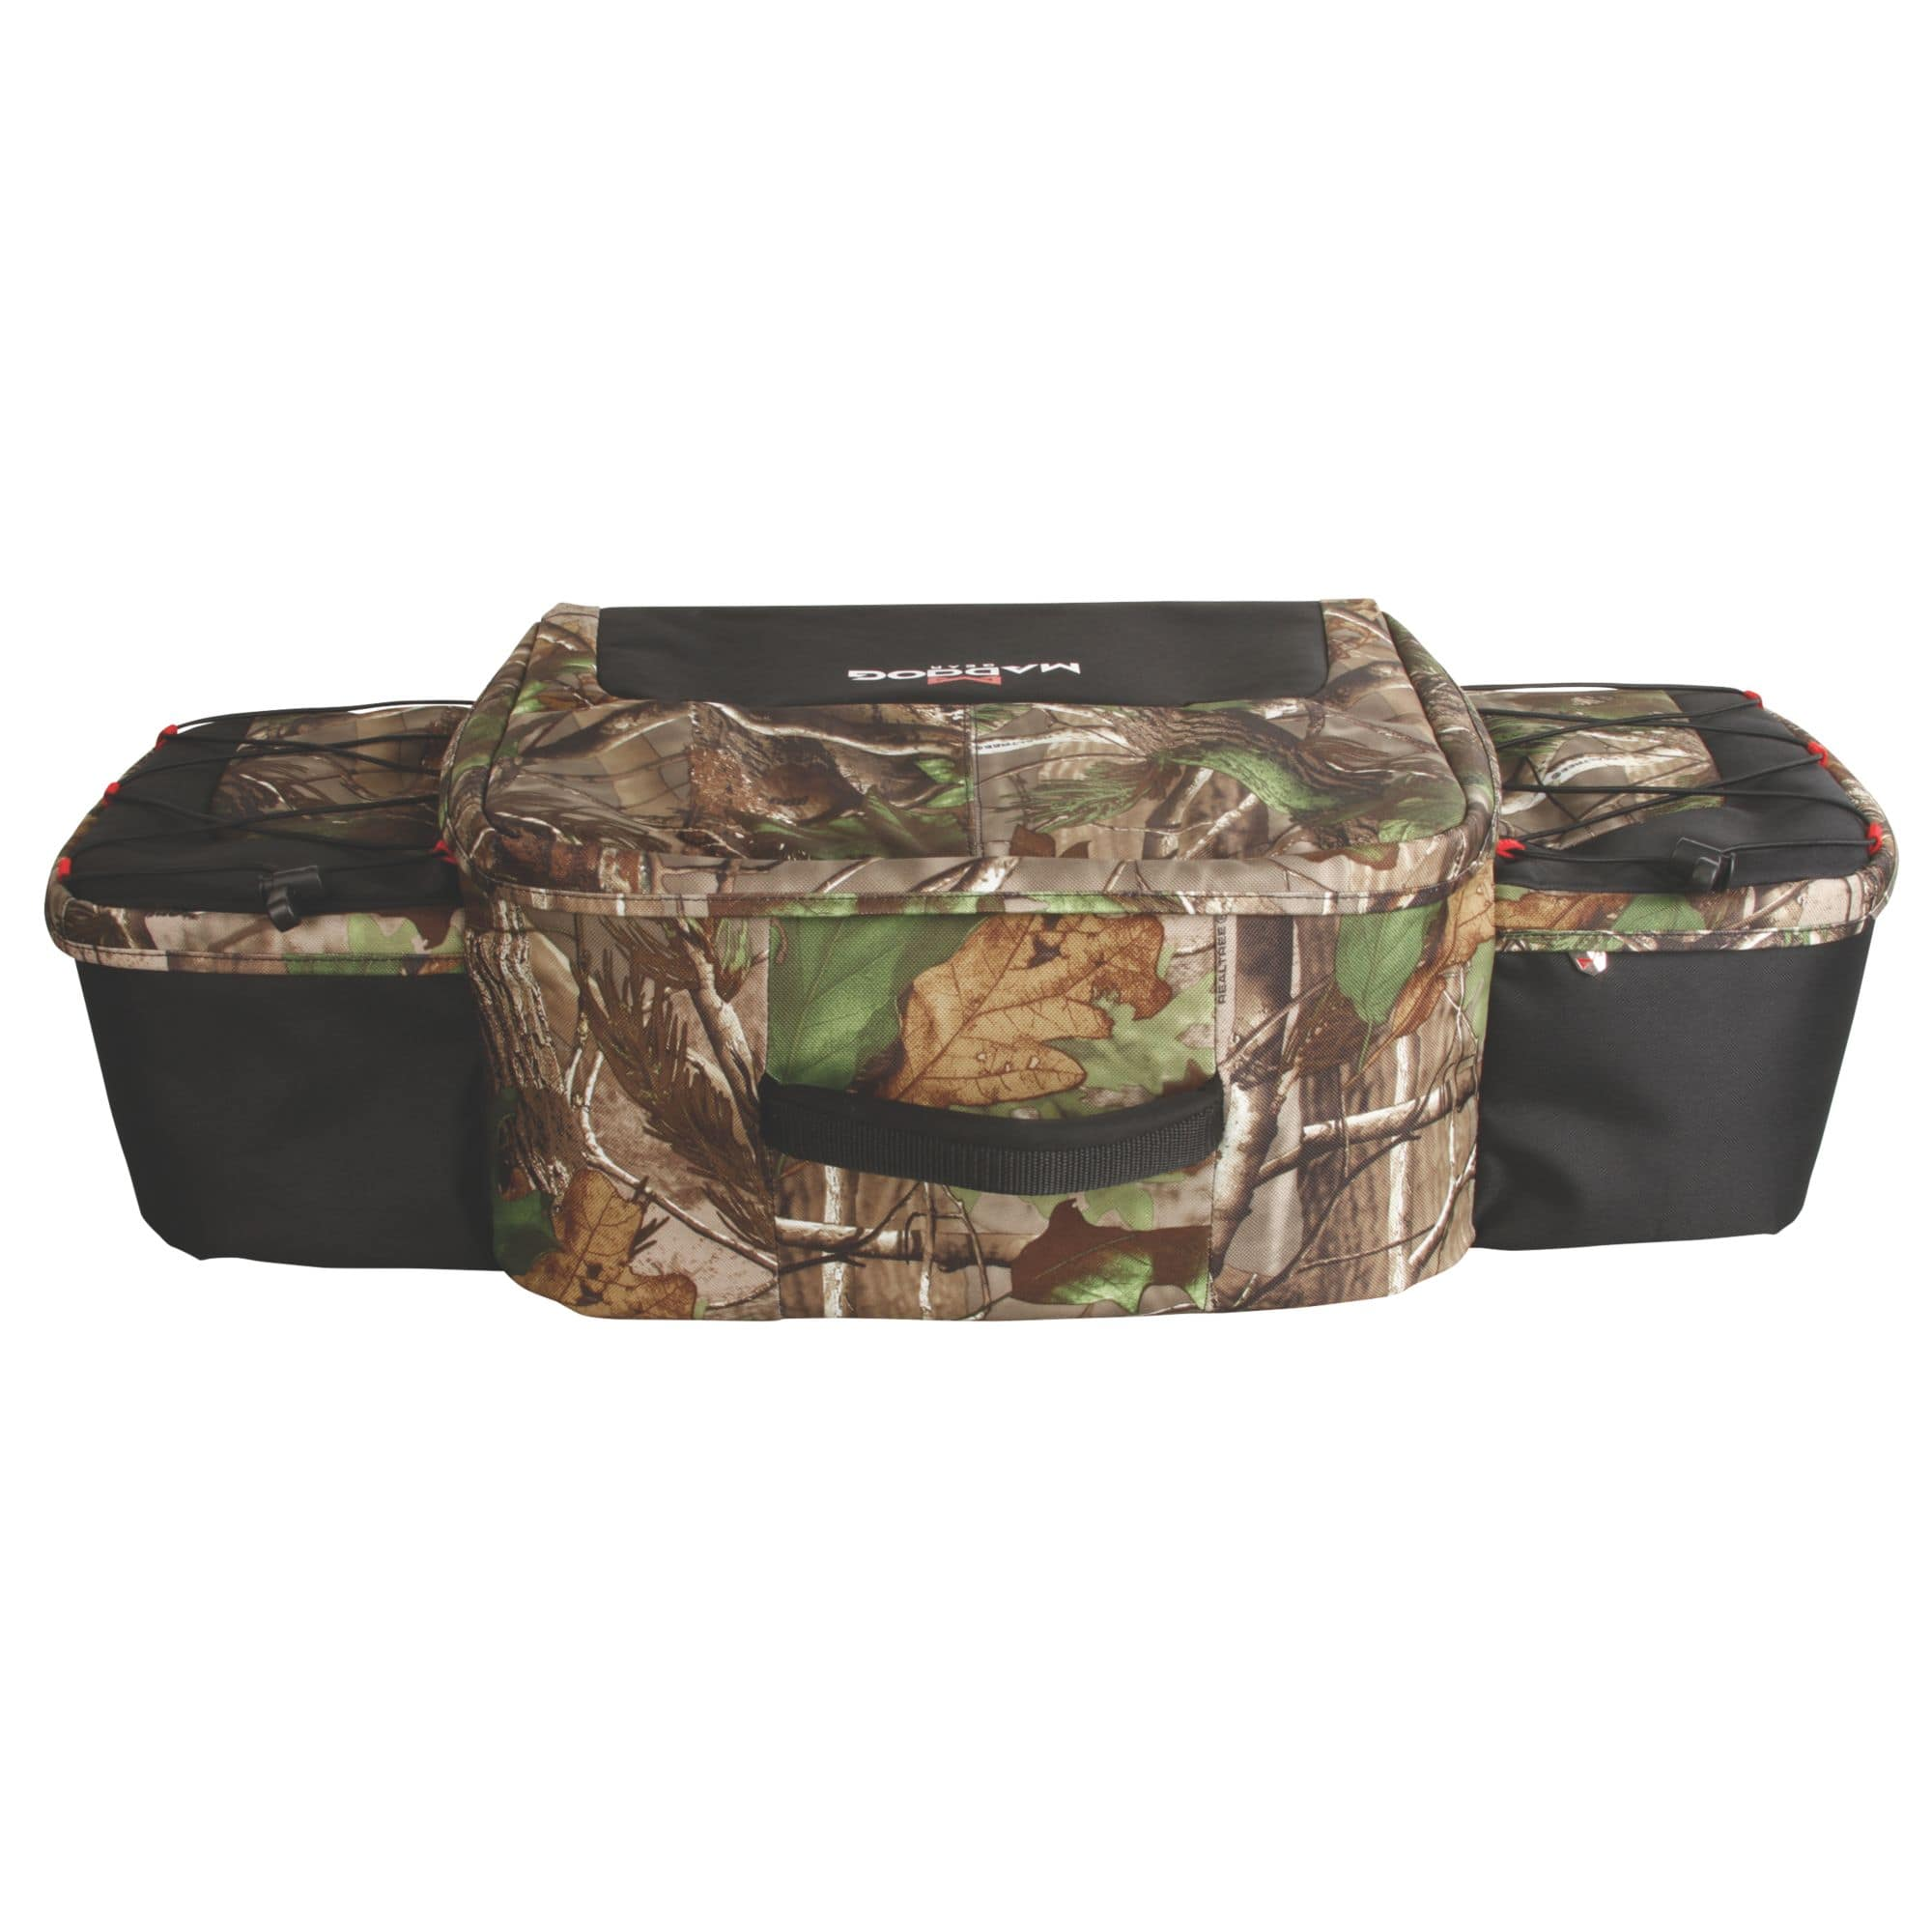 ATV FRONT PACK WITH REALTREE APG® CAMO 30% Off with $62.99 + Free Shipping